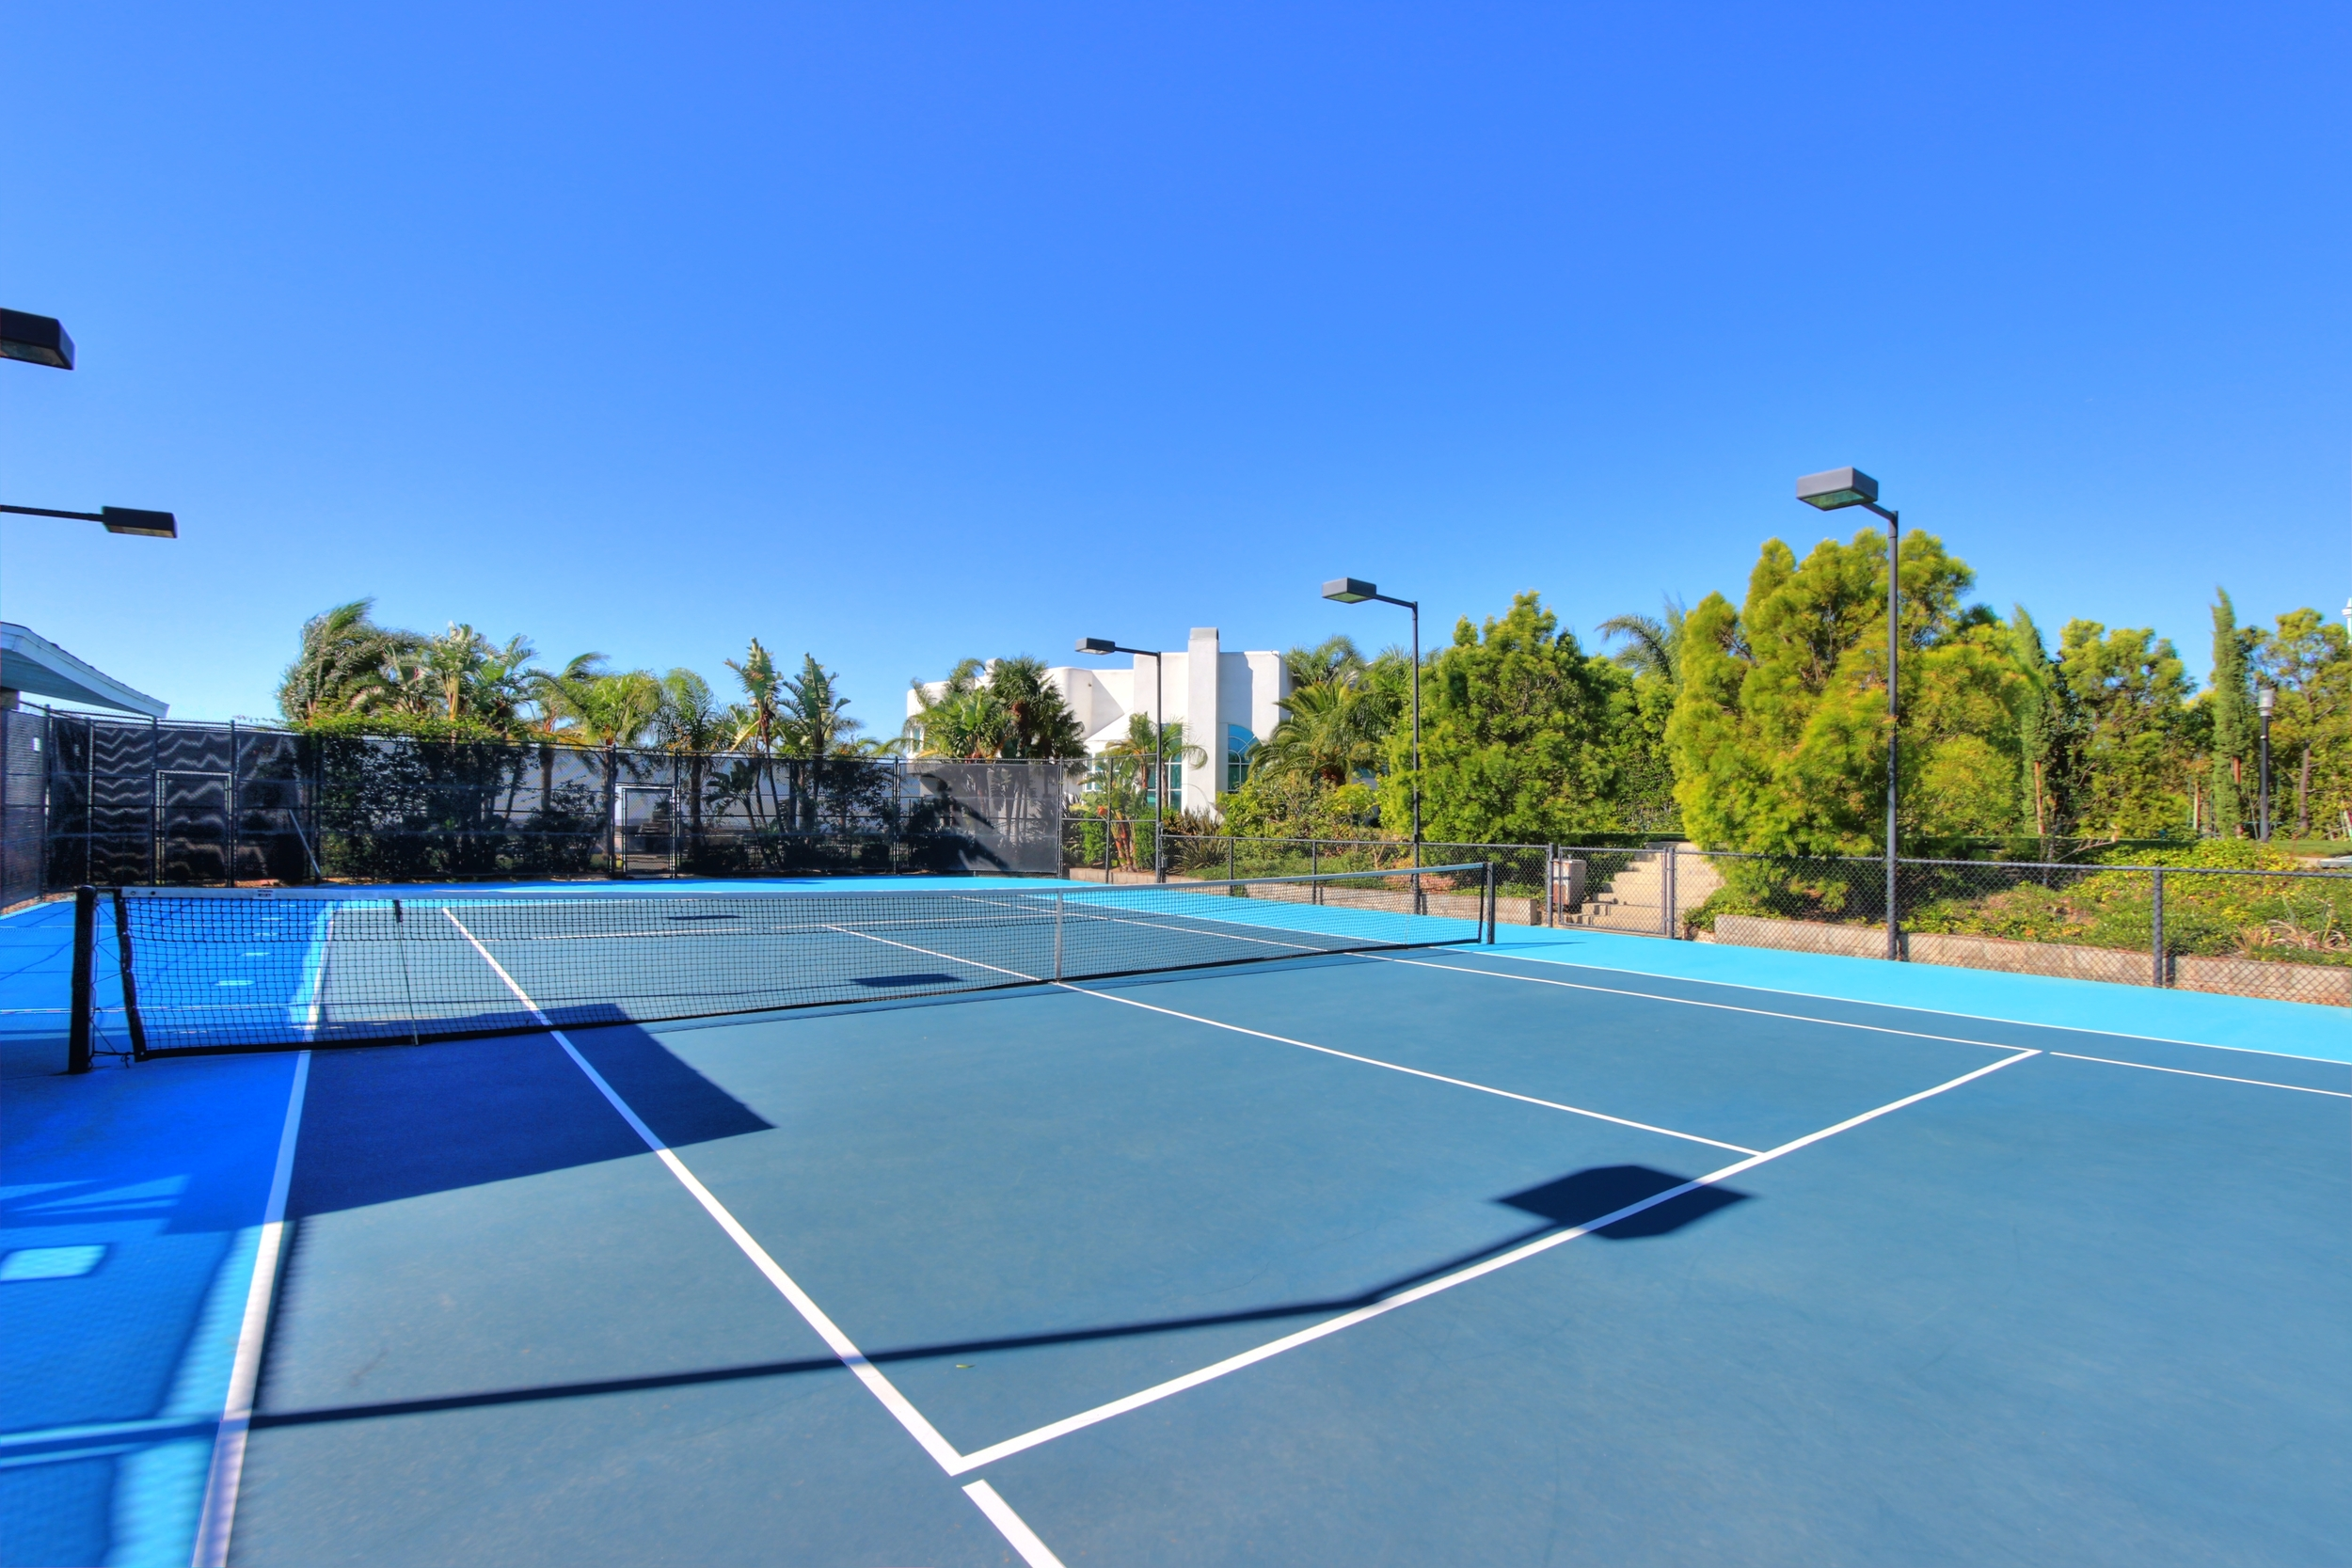 TennisCourts_3.jpg